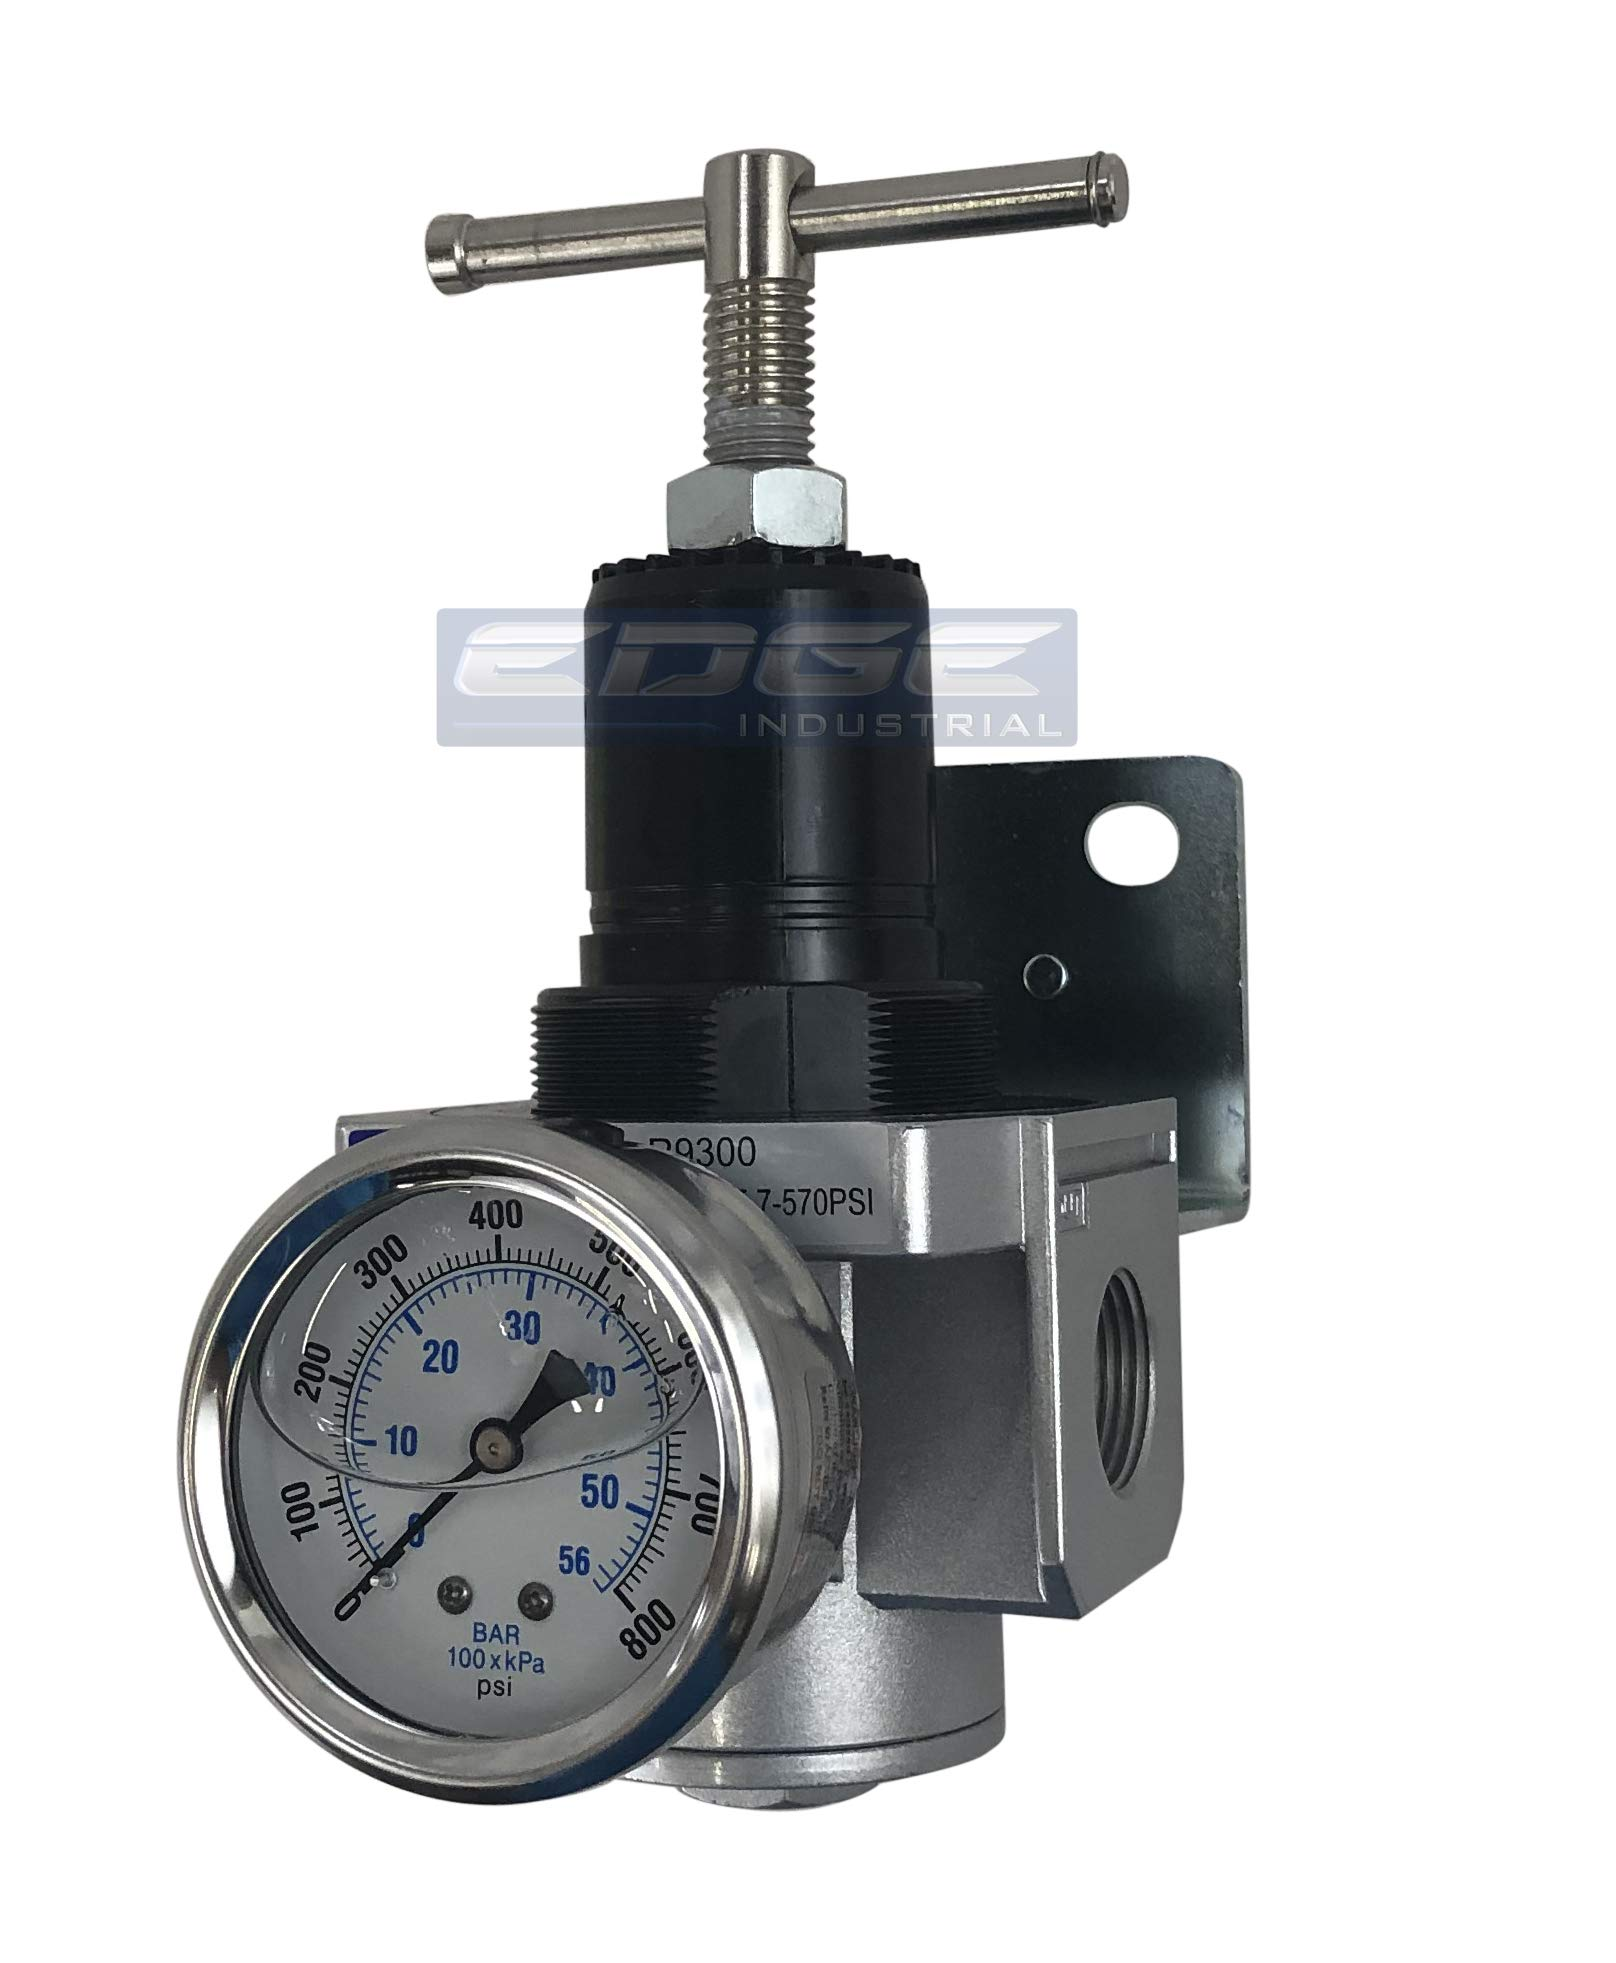 7 TO 570 PSI, 1'' NPT, HIGH PRESSURE INDUSTRIAL REGULATOR FOR AIR & INERT GAS, ADJUSTABLE FROM 7 THROUGH 570 PSI, HIGH FLOW RATE, T-HANDLE STYLE ADJUSTMENT WITH LIQUID FILLED PRESSURE GAUGE (1'' NPT) by EDGE INDUSTRIAL